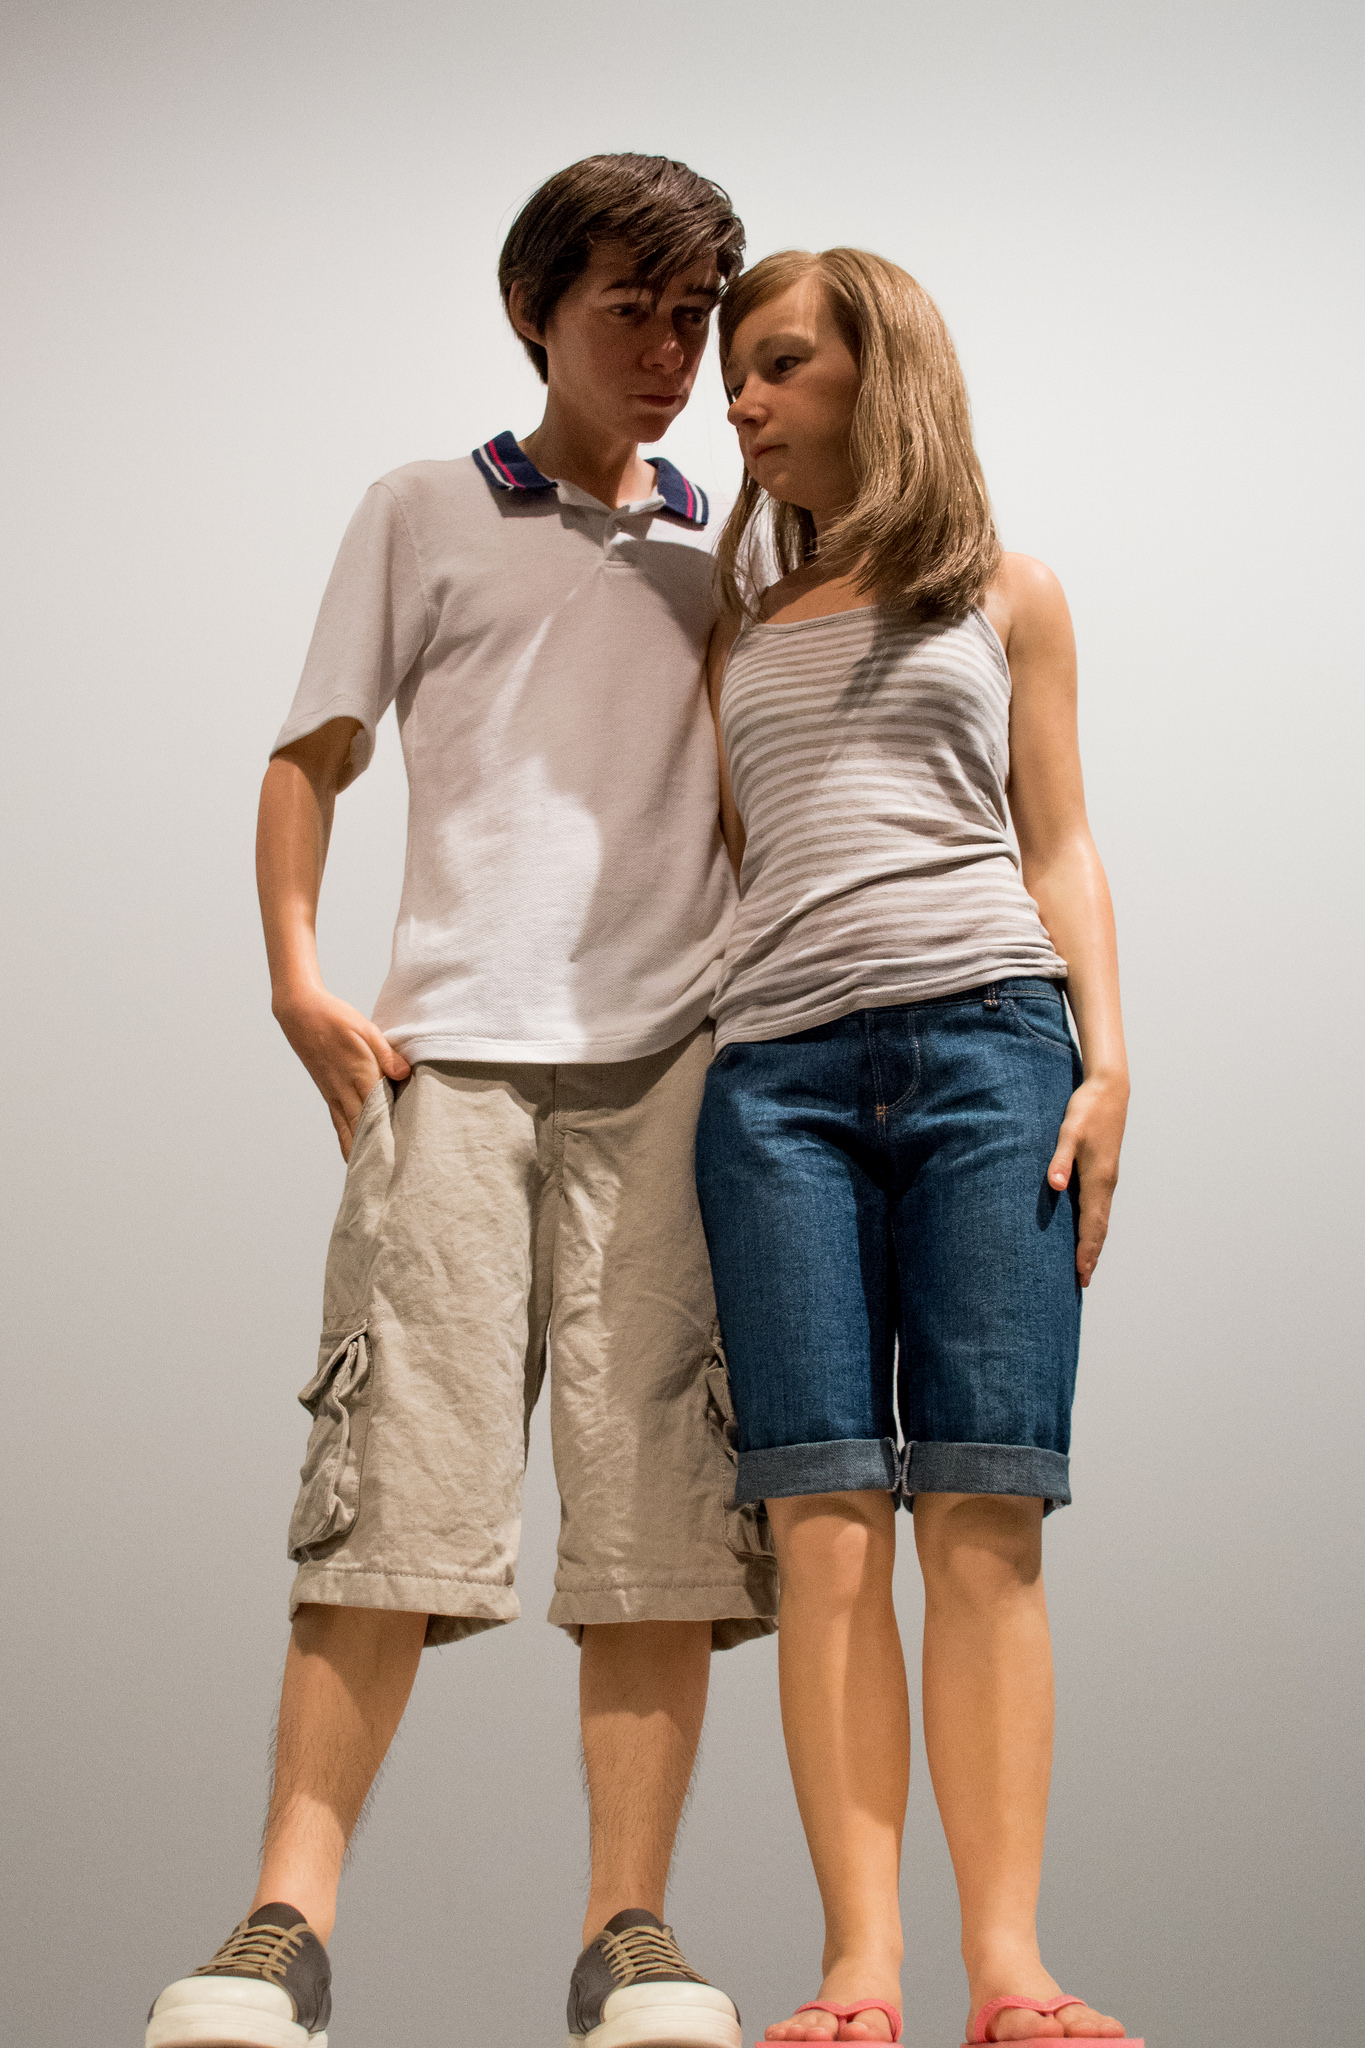 Ron Mueck S Hyperrealistic Sculptures Must Be Seen To Be